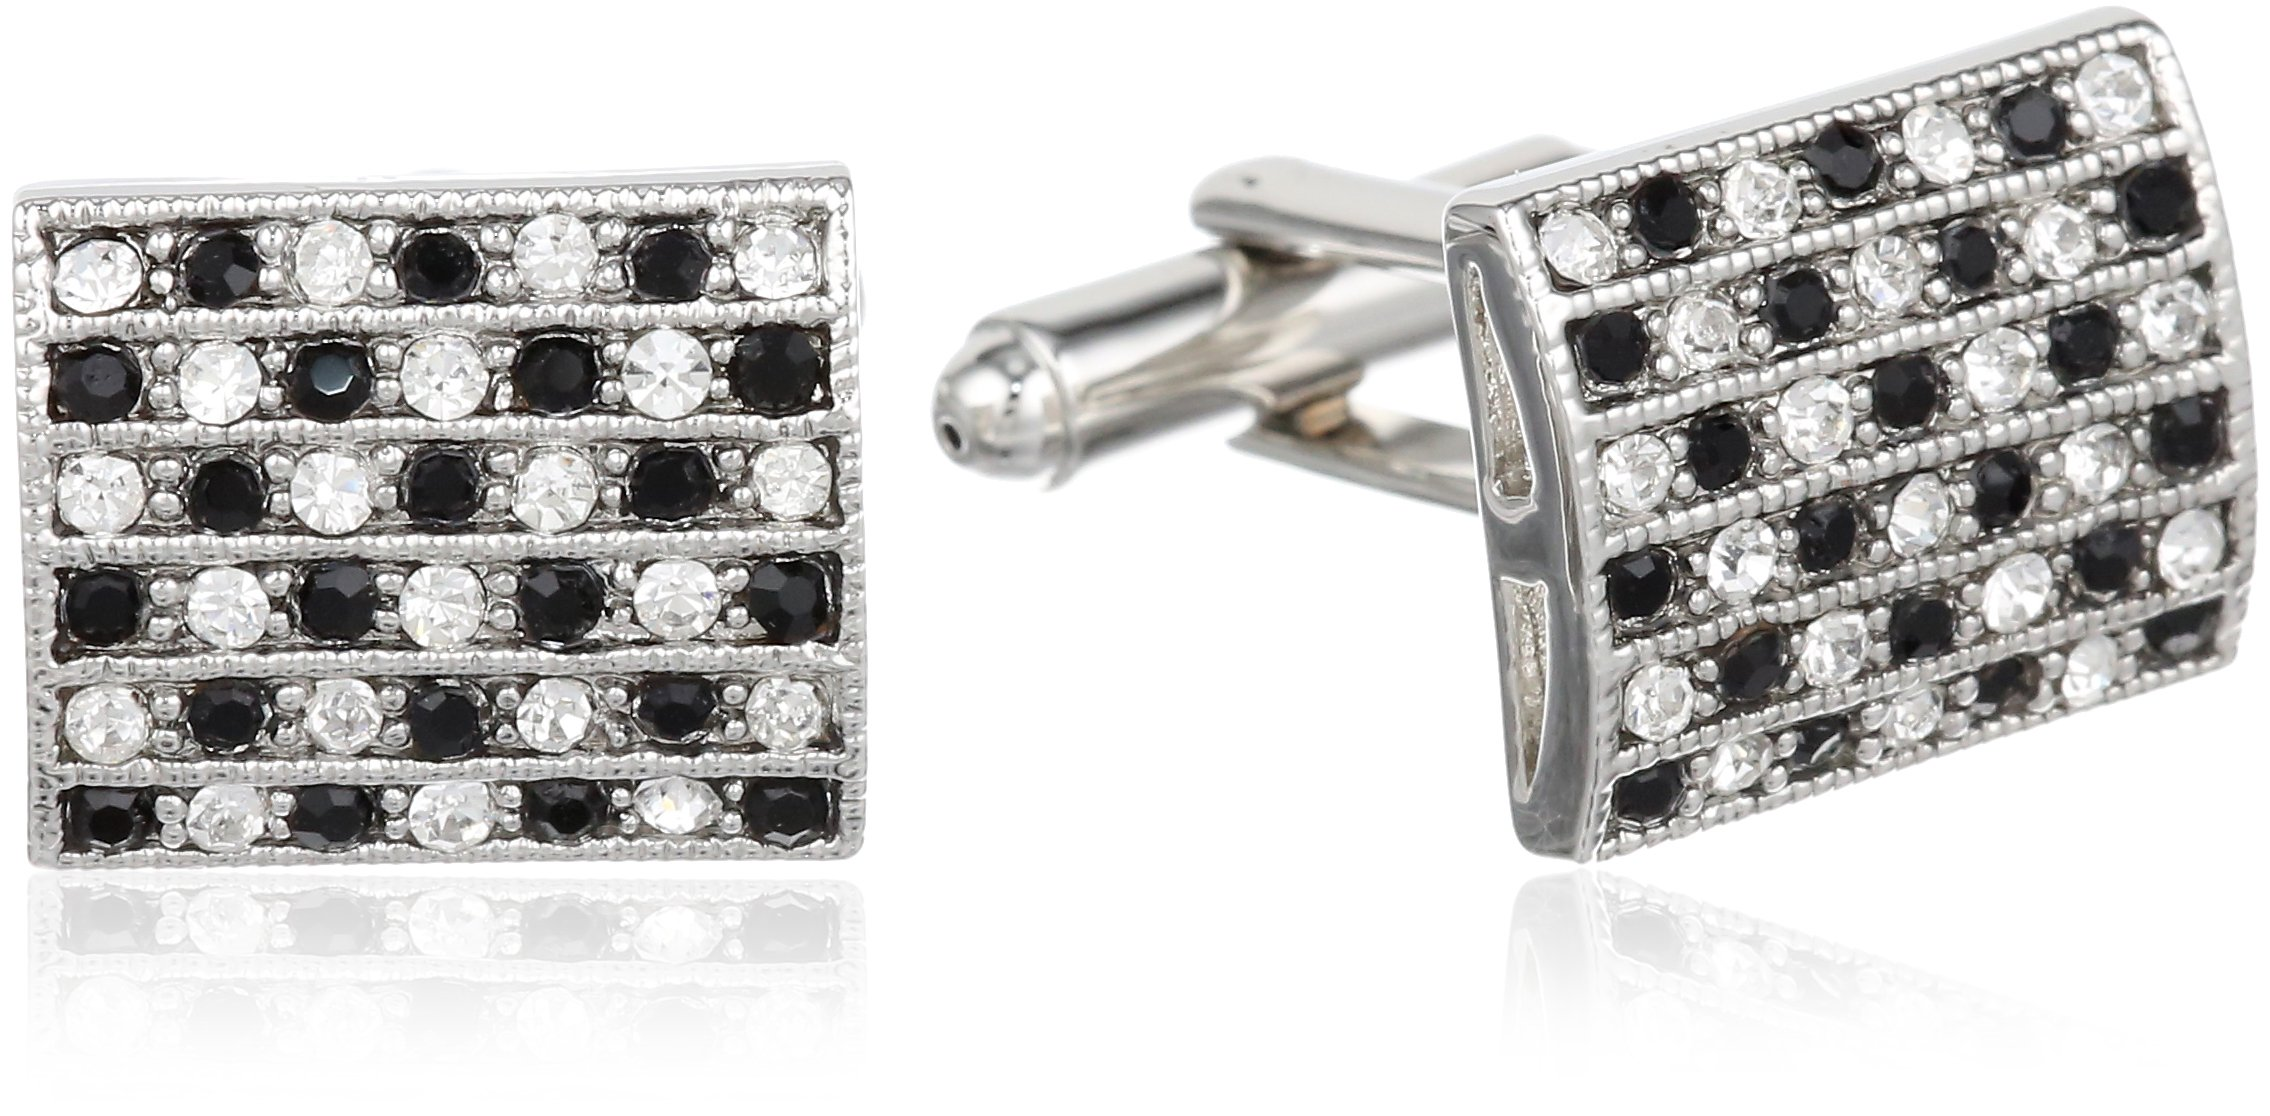 Stacy Adams Men's Cuff Link With Black and Clear Crystals, Silver, One Size